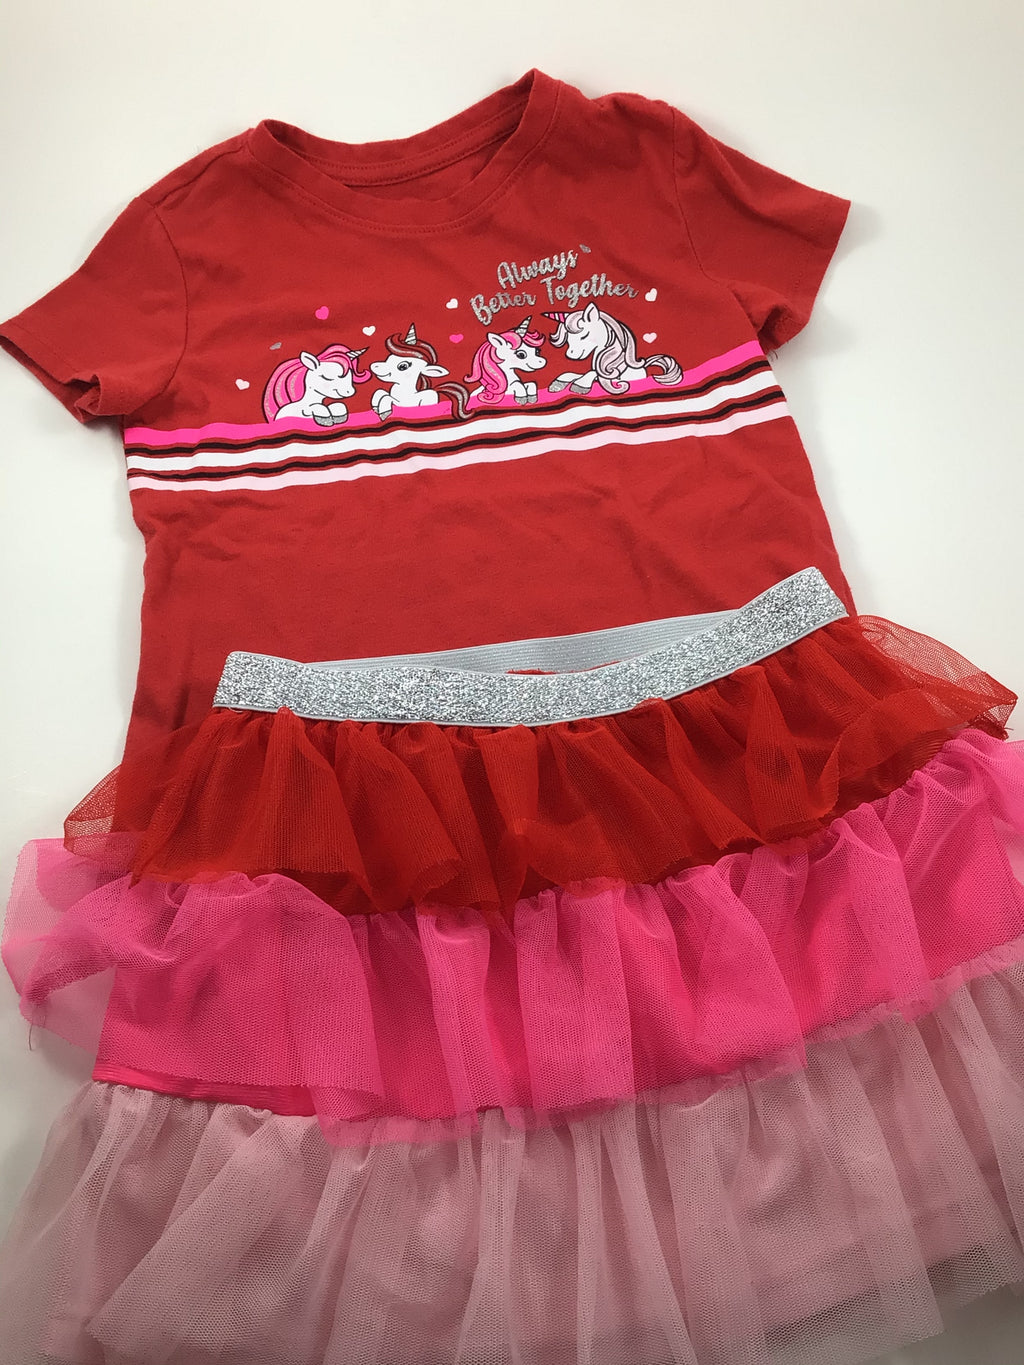 Girl's Short Sleeve Outfit - Size 5t